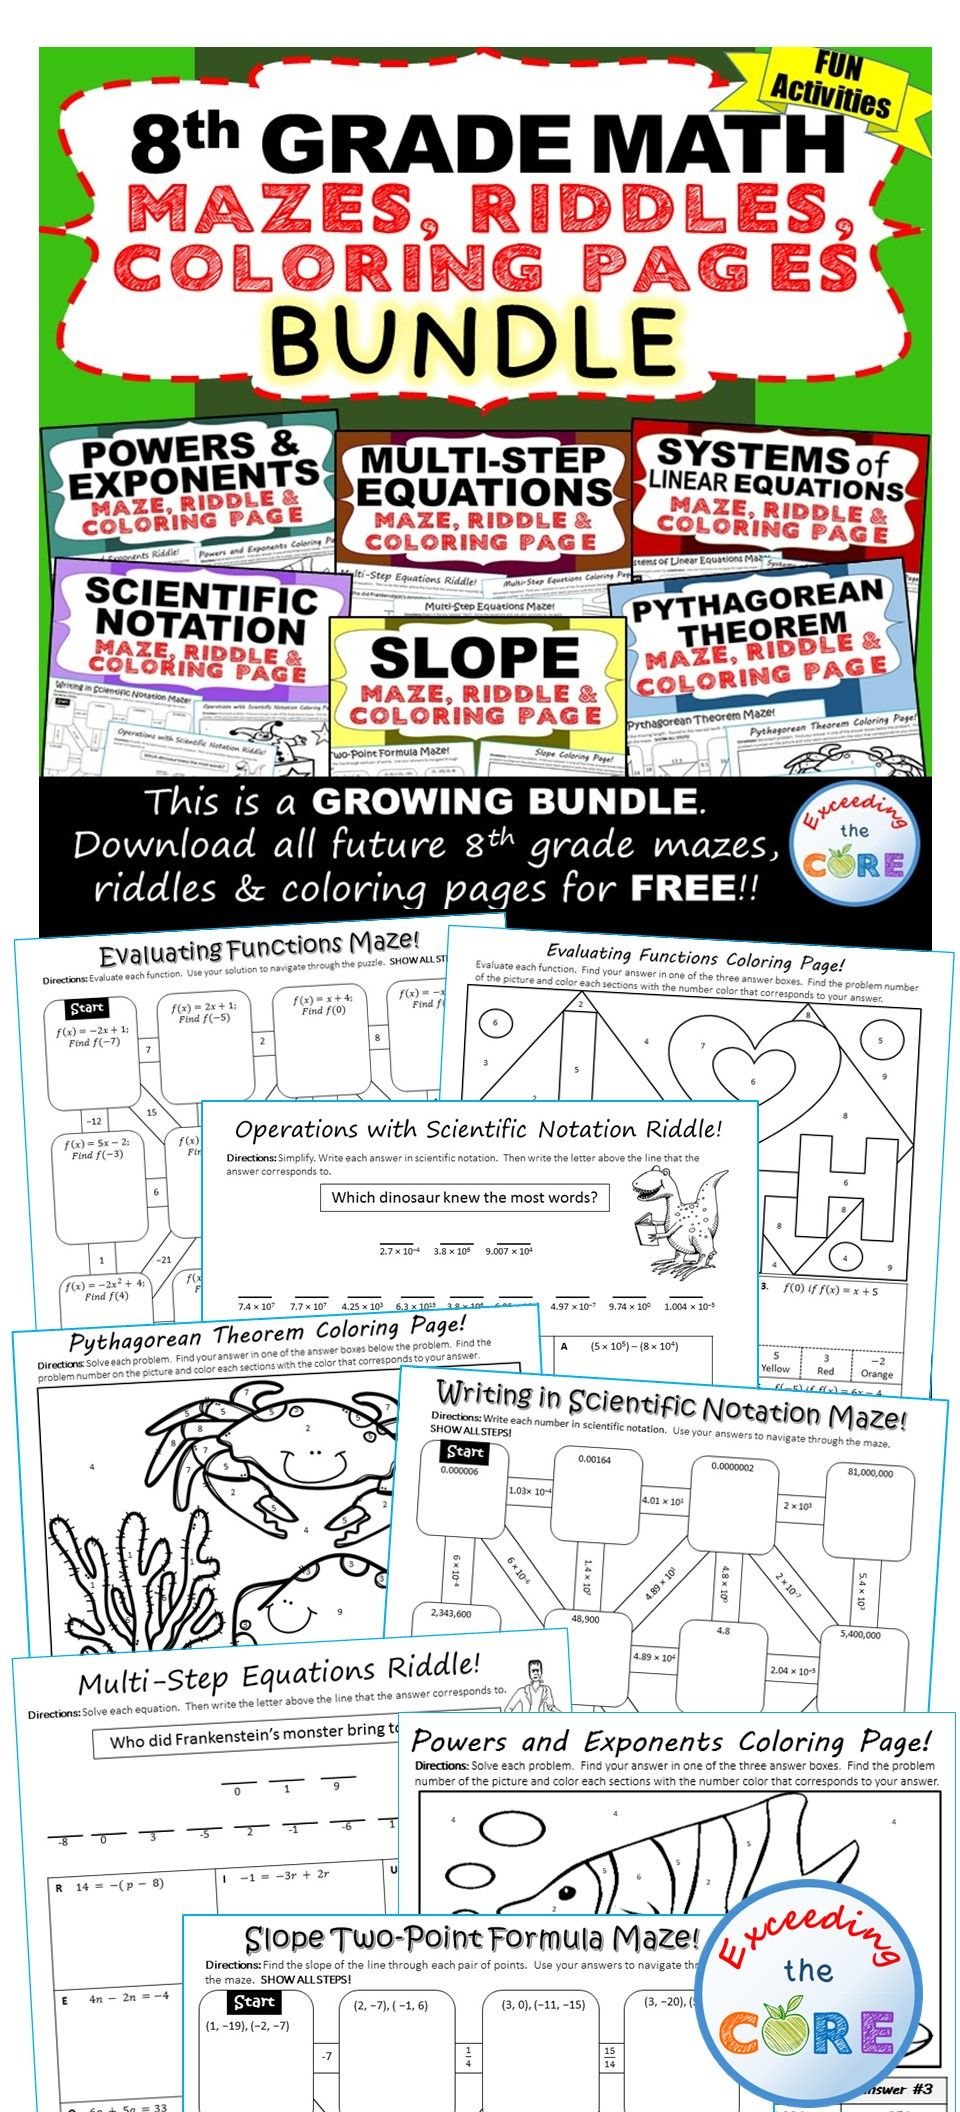 8th Grade Math Mazes, Riddles & Coloring Pages (Fun MATH ACTIVITIES ) Whats Included: ✔ Powers & Exponents MAZE, RIDDLE & COLORING PAGE ✔ Multi-Step Equations MAZE, RIDDLE & COLORING PAGE ✔ System of Linear Equations MAZE, RIDDLE & COLORING PAGE ✔Pythagorean Theorem ✔ Slope ✔ Scientific Notation Middle School Common Core 8G7, 8EE1, 8EE2, 8EE7, 8EE8